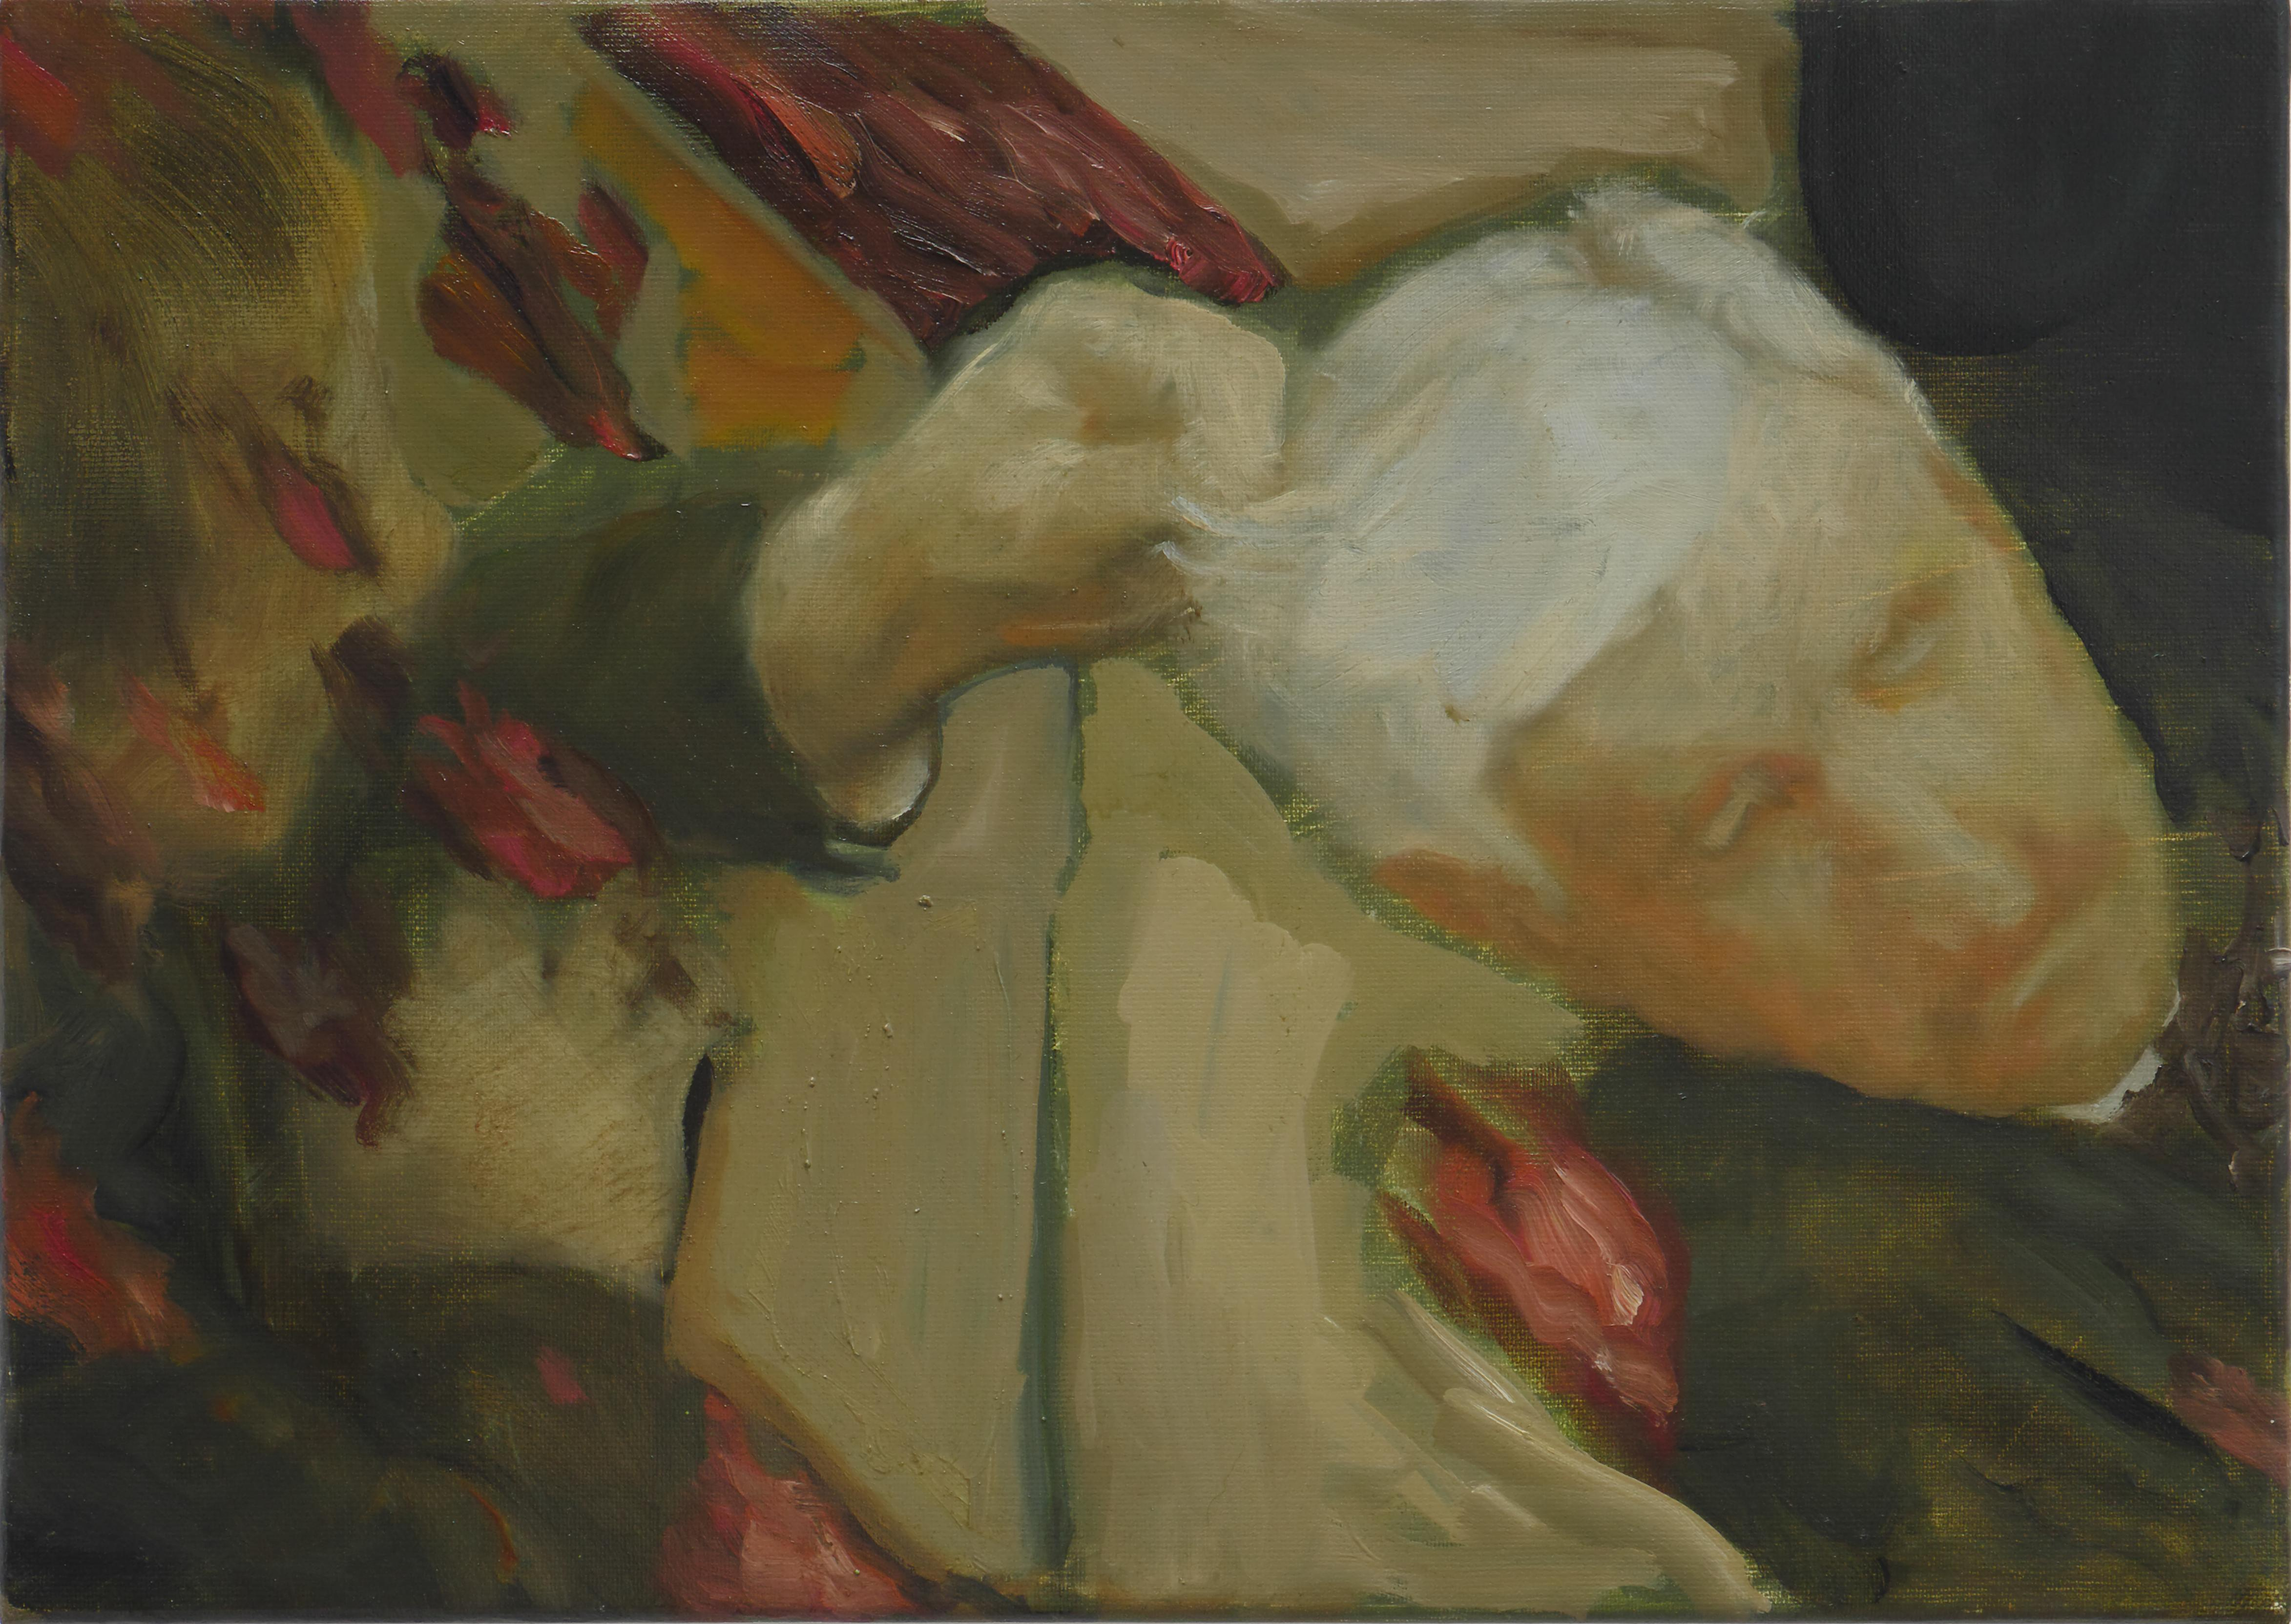 Where the Roses Grow - Contemporary Figurative Oil Painting, Existentialism